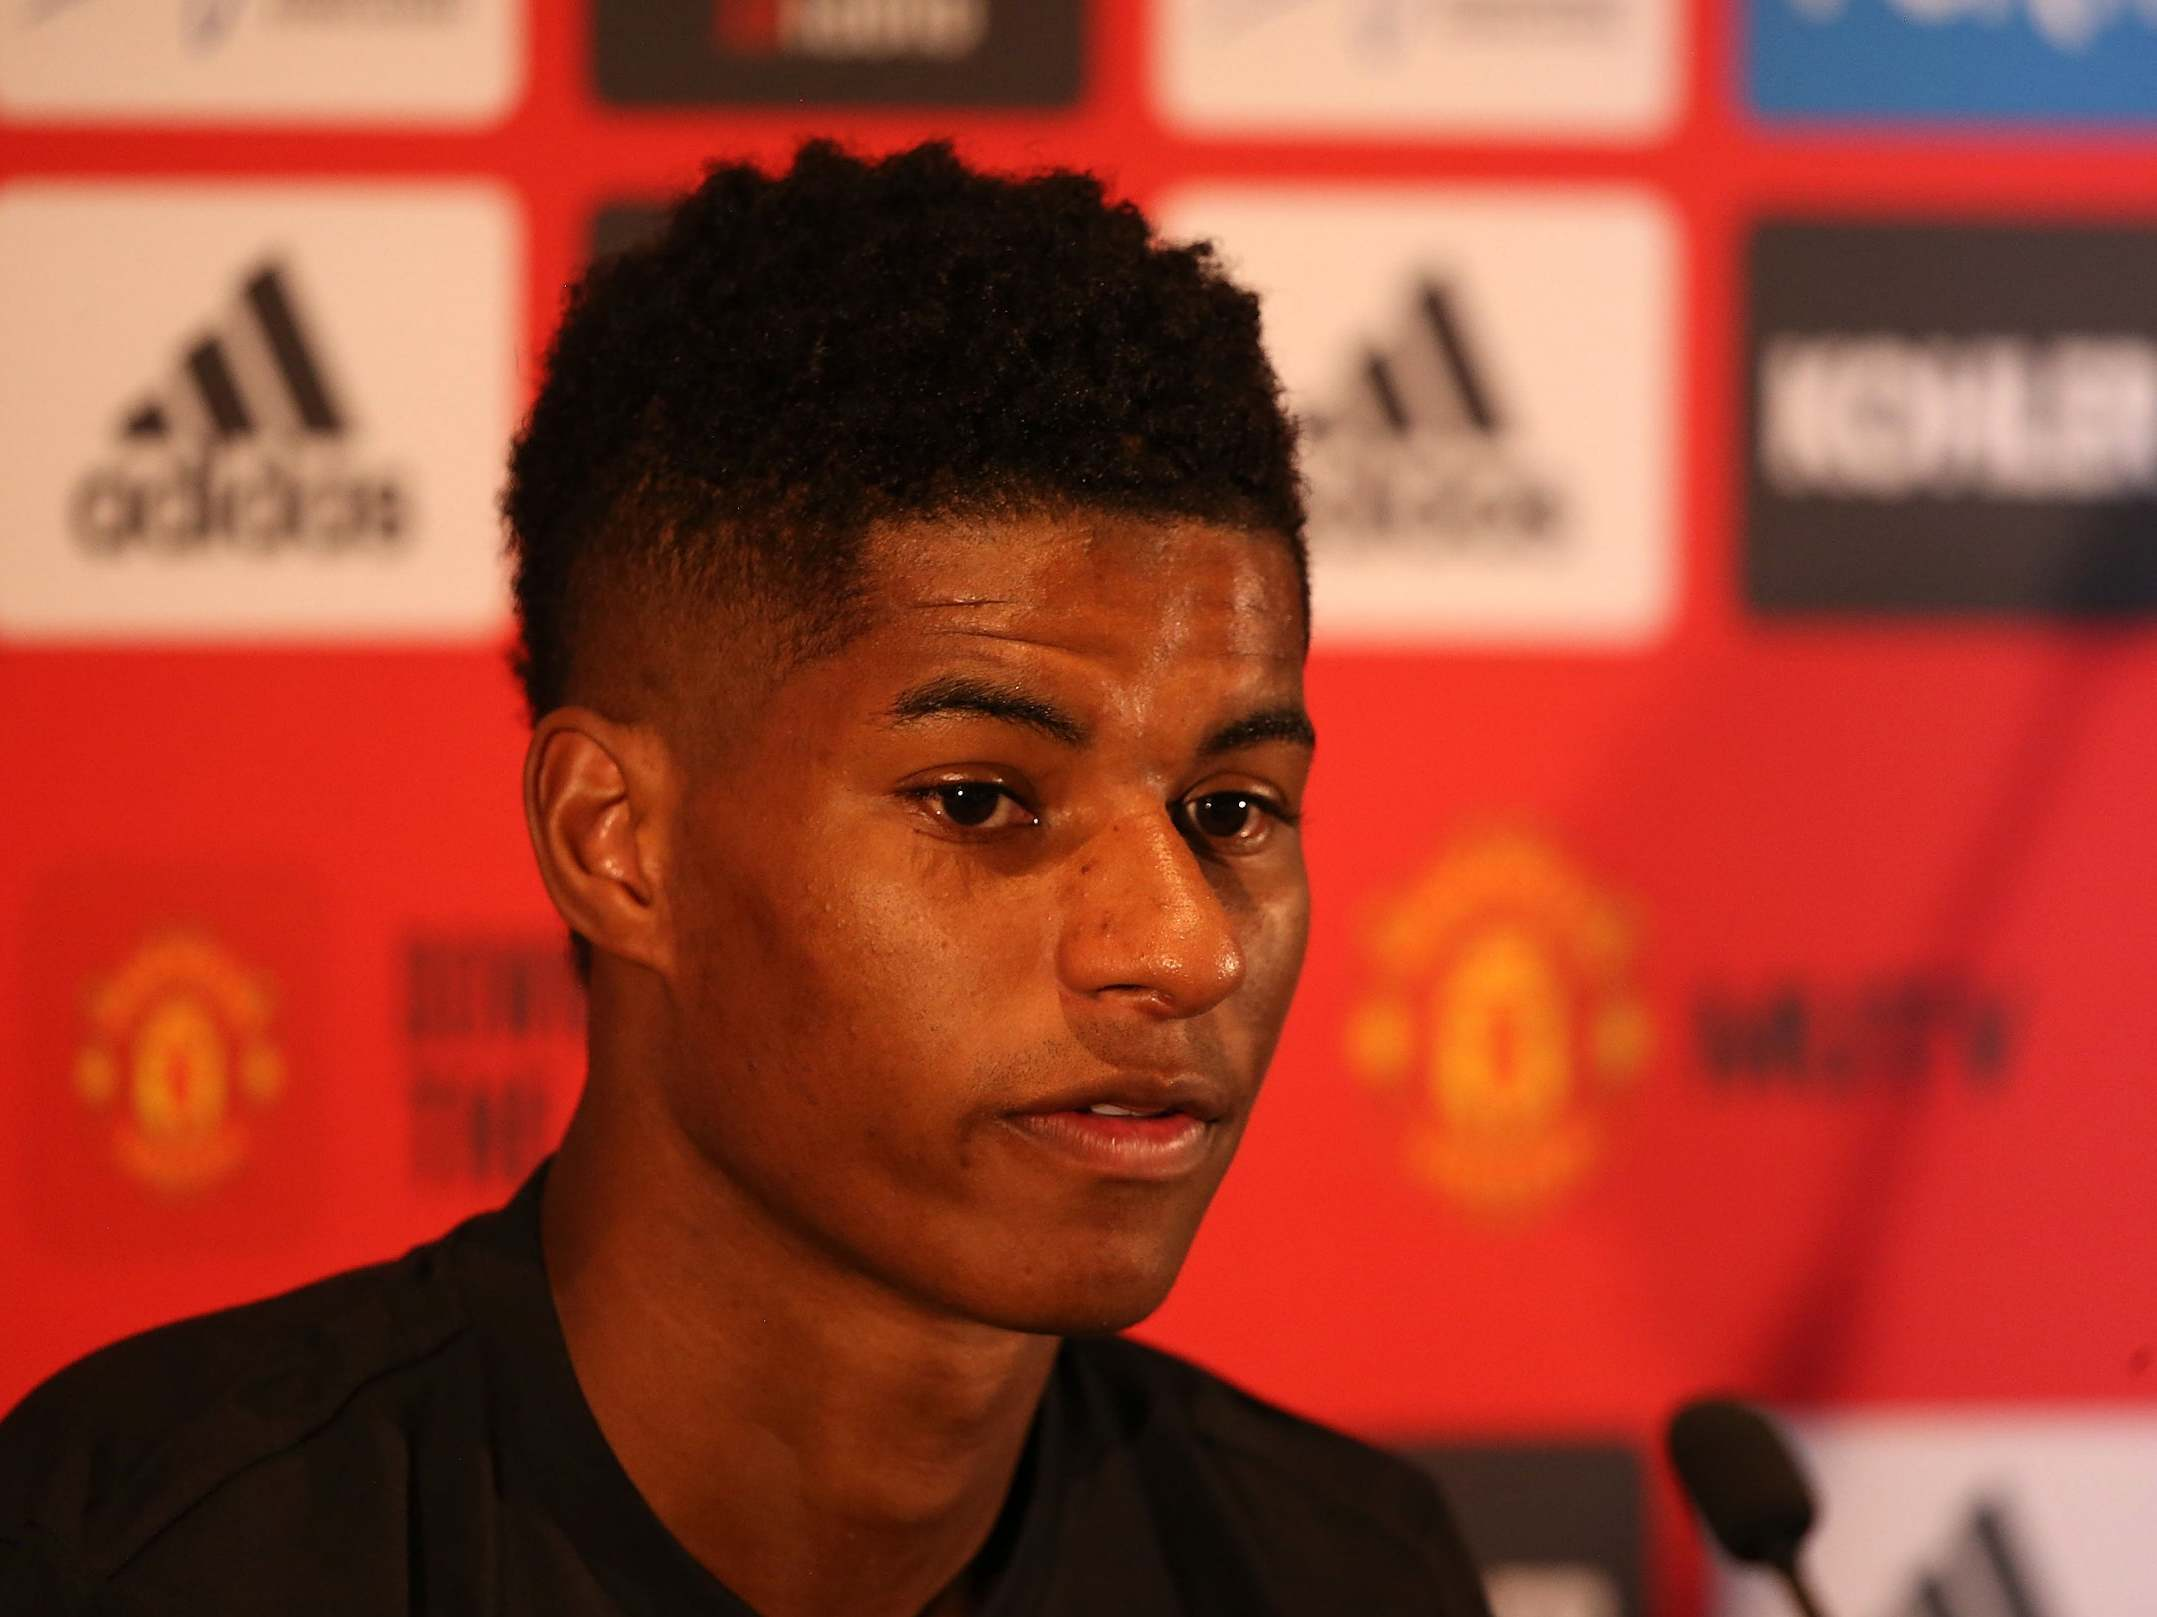 Marcus Rashford Explains Why He Is Ready To Hit Ground Running For Manchester United And Break 20 Goal Barrier The Independent The Independent